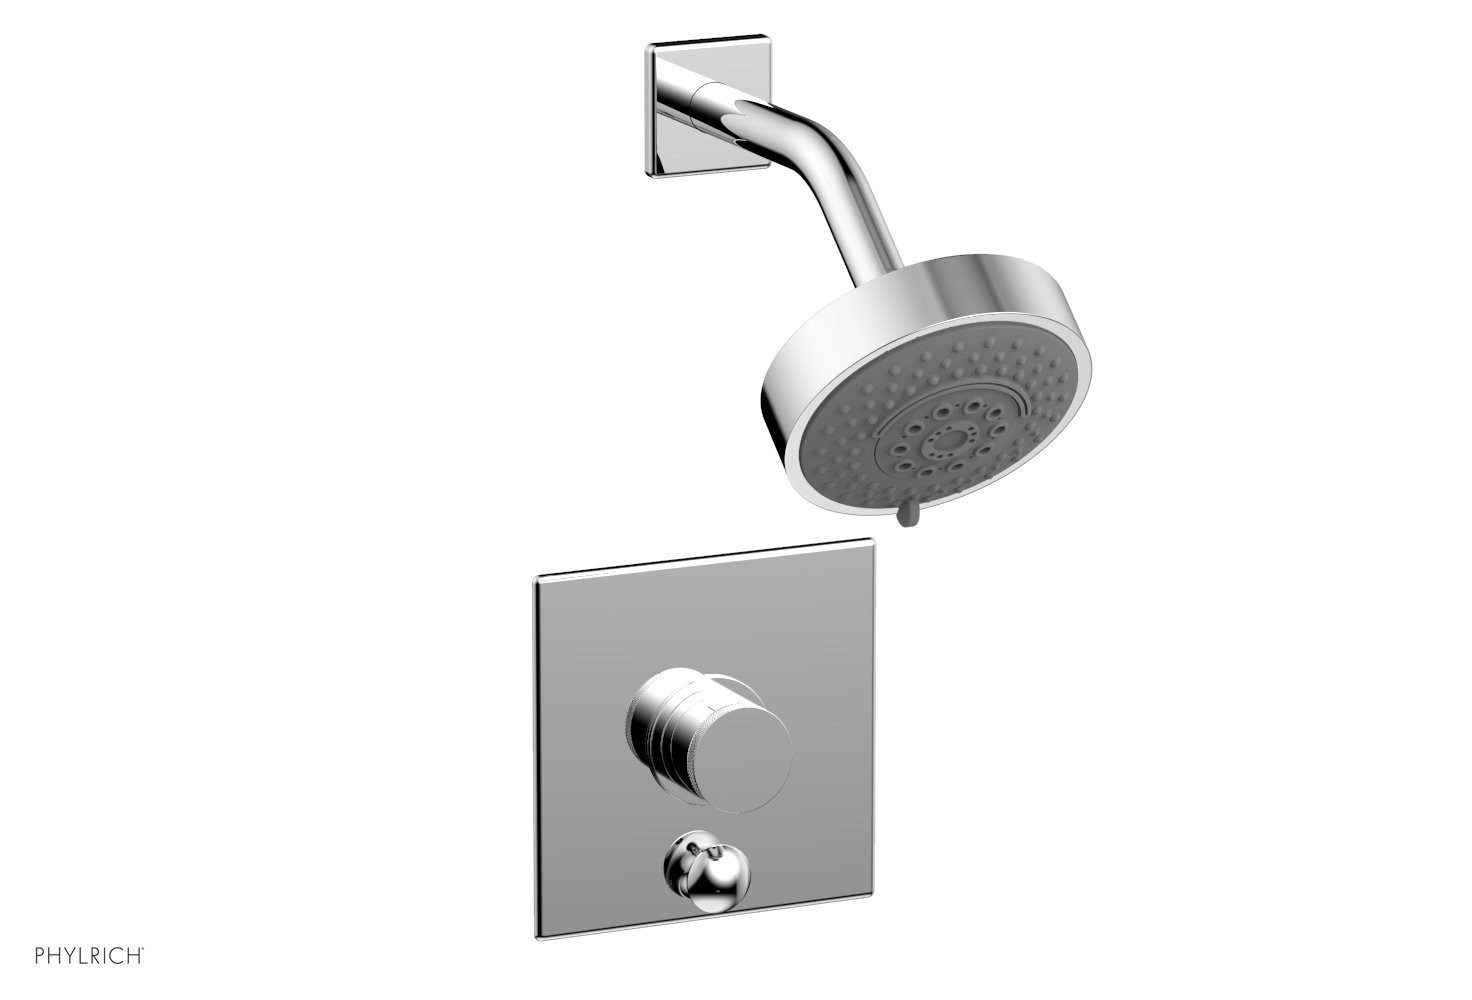 PHYLRICH 4-192 BASIC II WALL MOUNT PRESSURE BALANCE SHOWER AND DIVERTER SET WITH KNURLED HANDLE